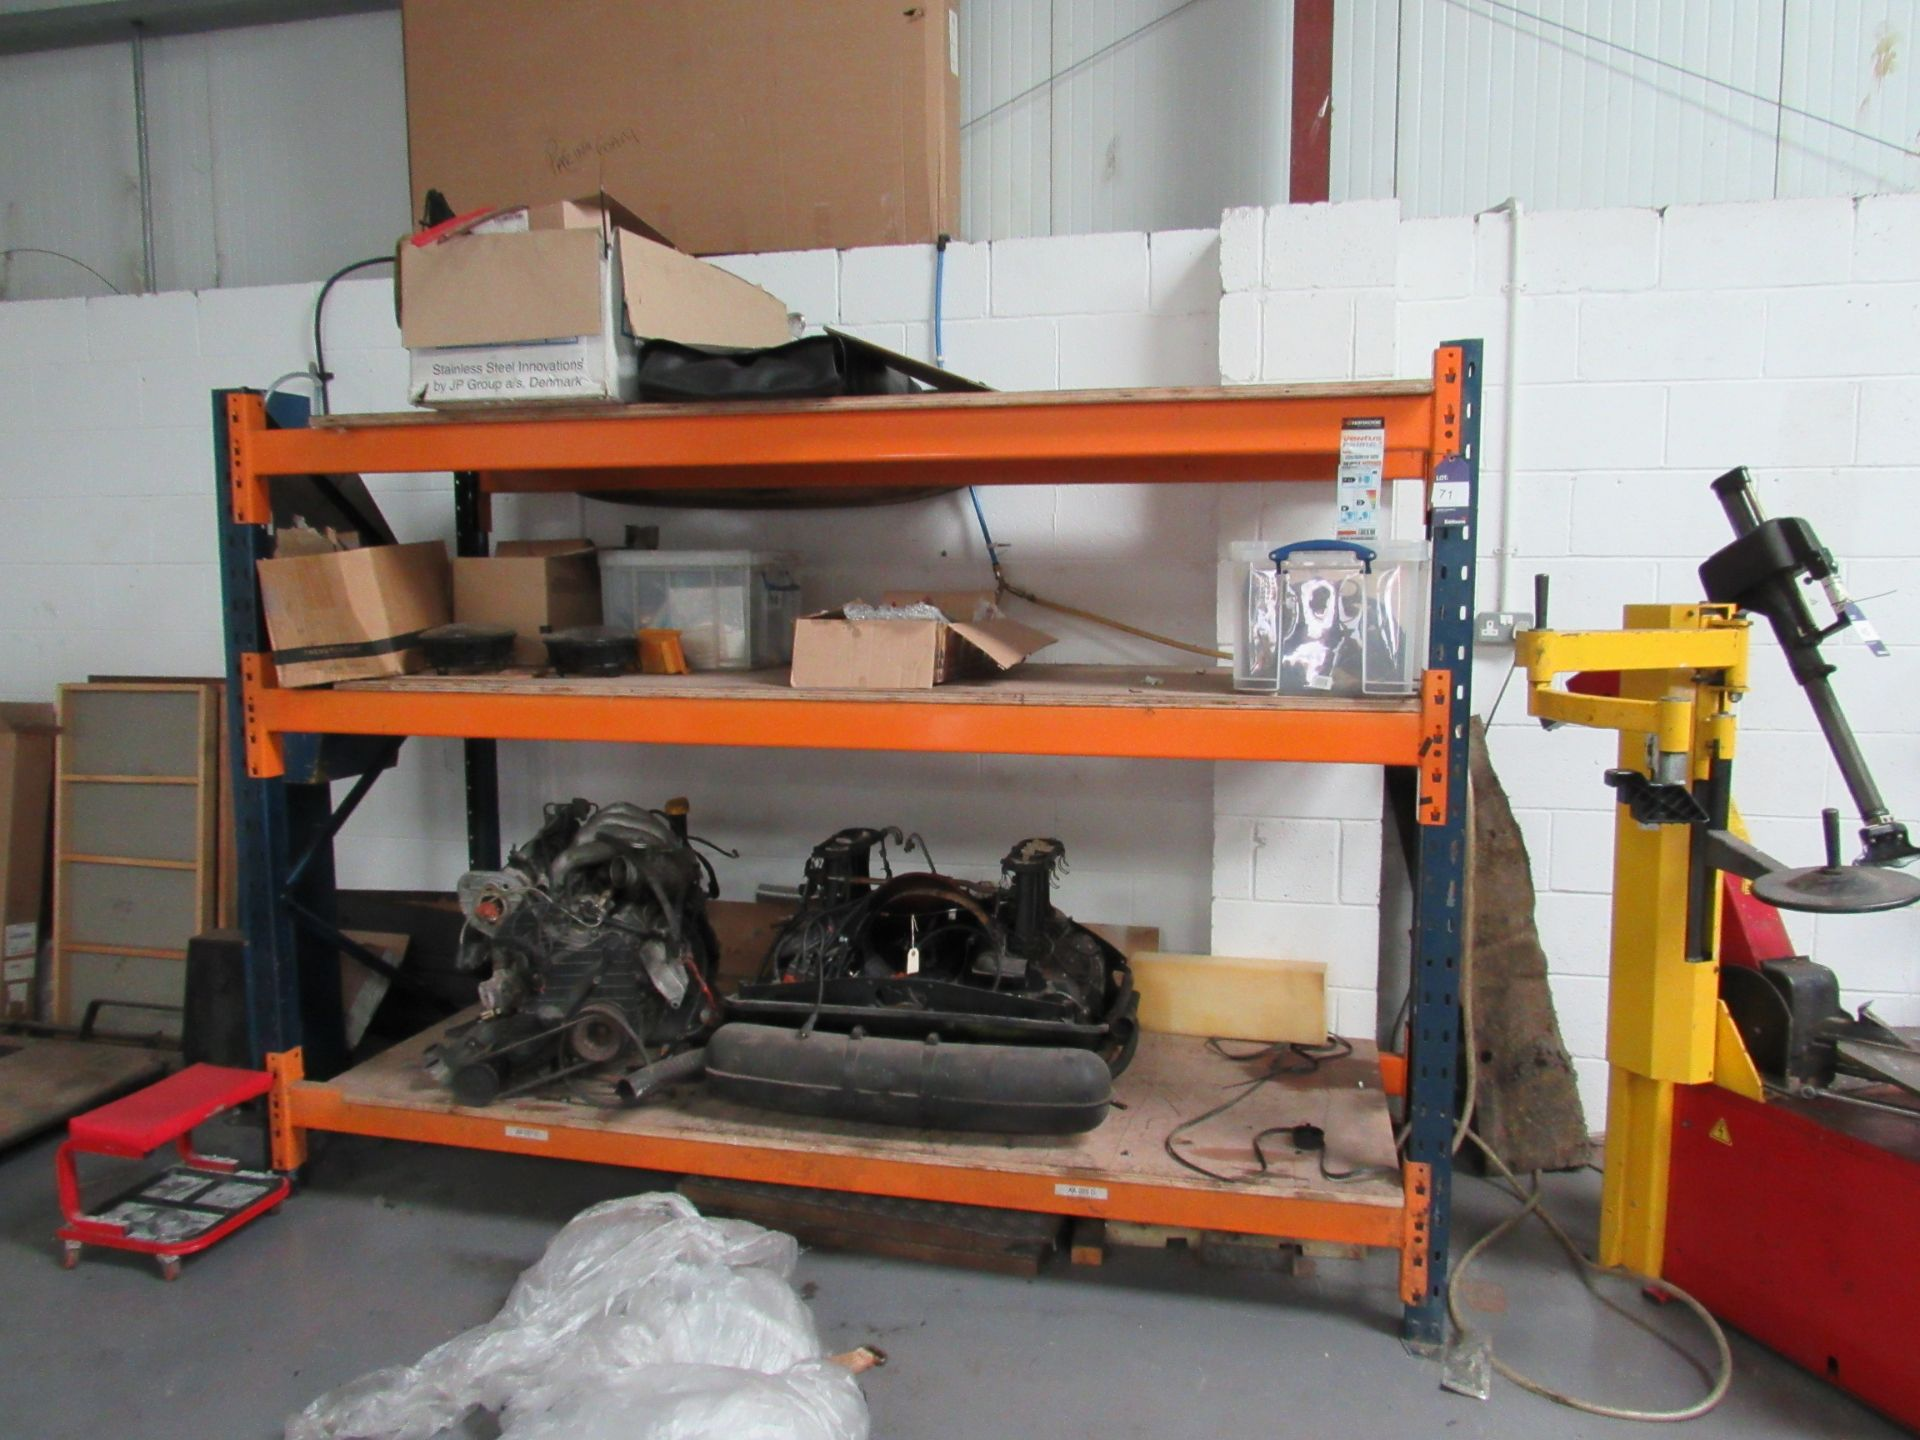 Lot 71 - 3 Tier Warehouse Rack, Contents not Included (Located at Unit 11)